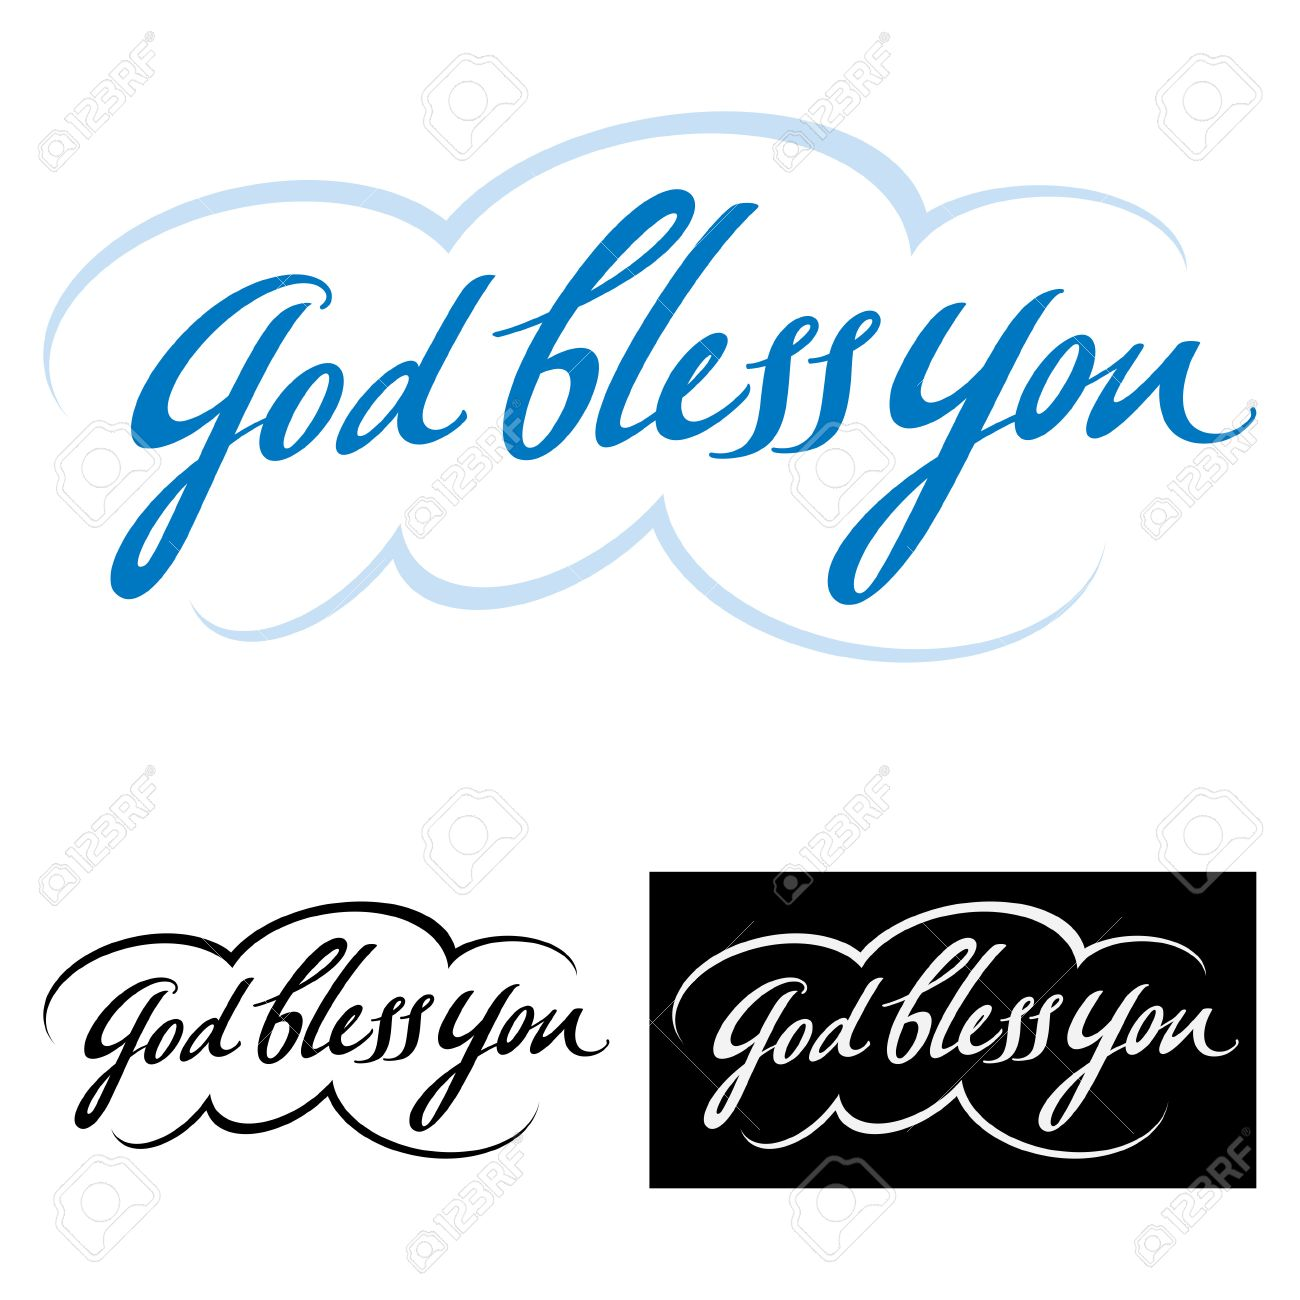 god bless you abstract vector word phrase good wish and blessing rh 123rf com irish blessing clipart blessing clipart free